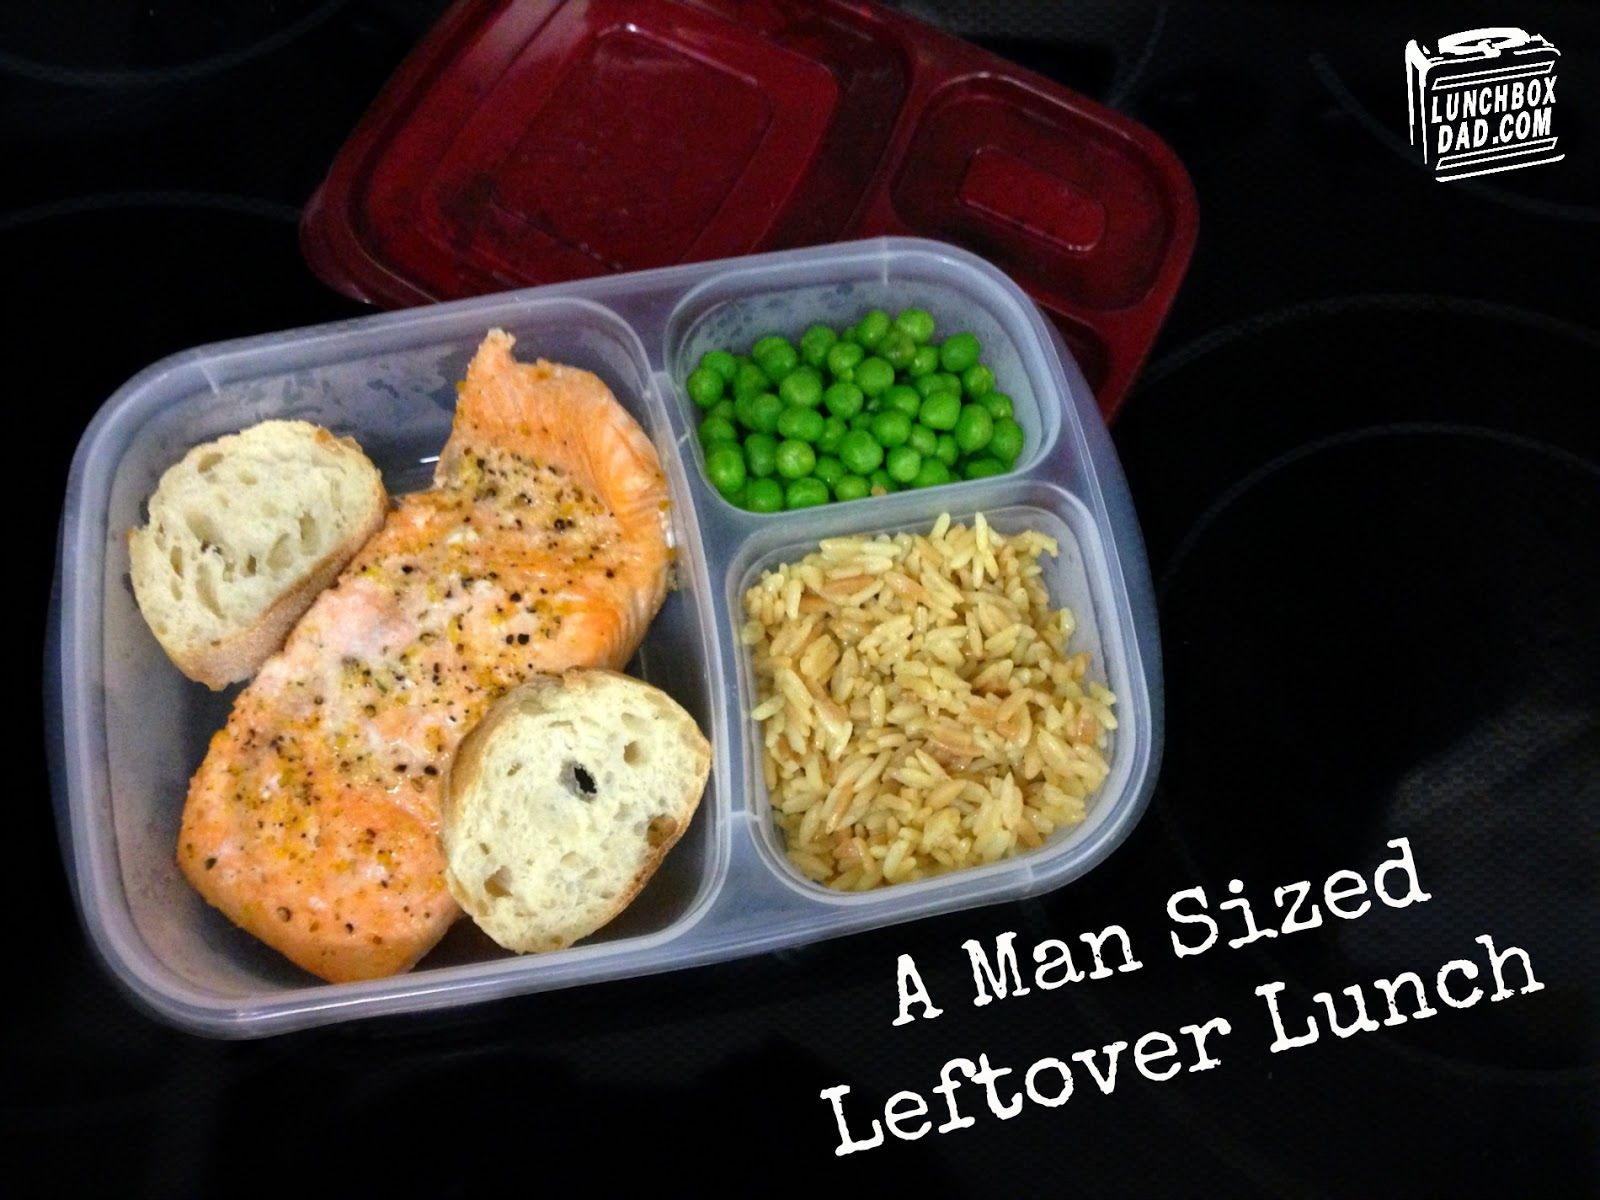 Save Time And Money Lunchbox Dad A Man Sized Leftover Lunch For Parents Here Is A Lunch For